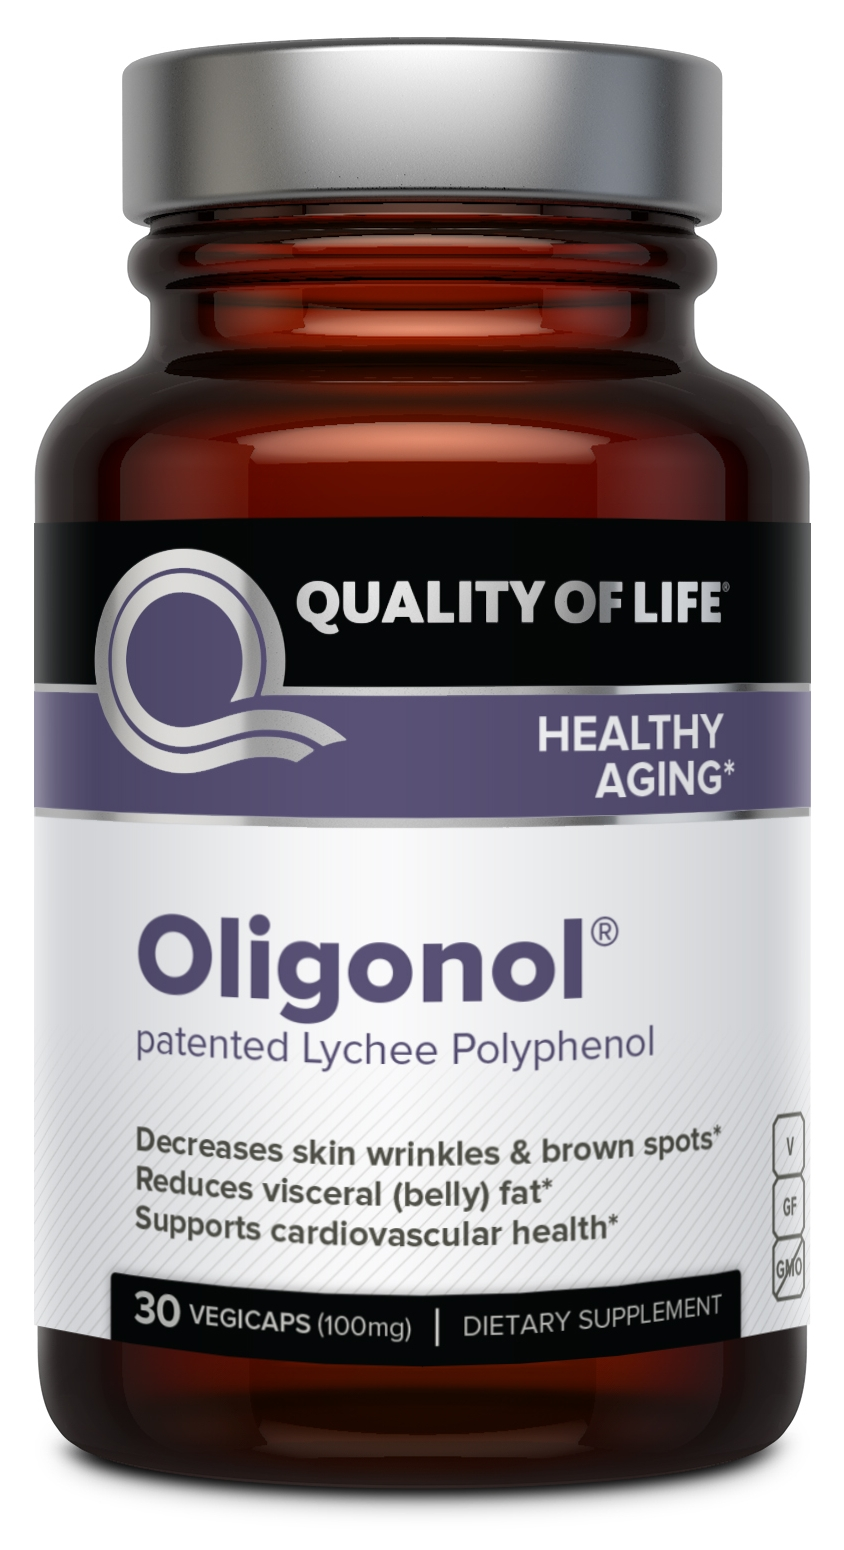 Oligonol 100 mg 30 Vegicaps by Quality of Life Labs